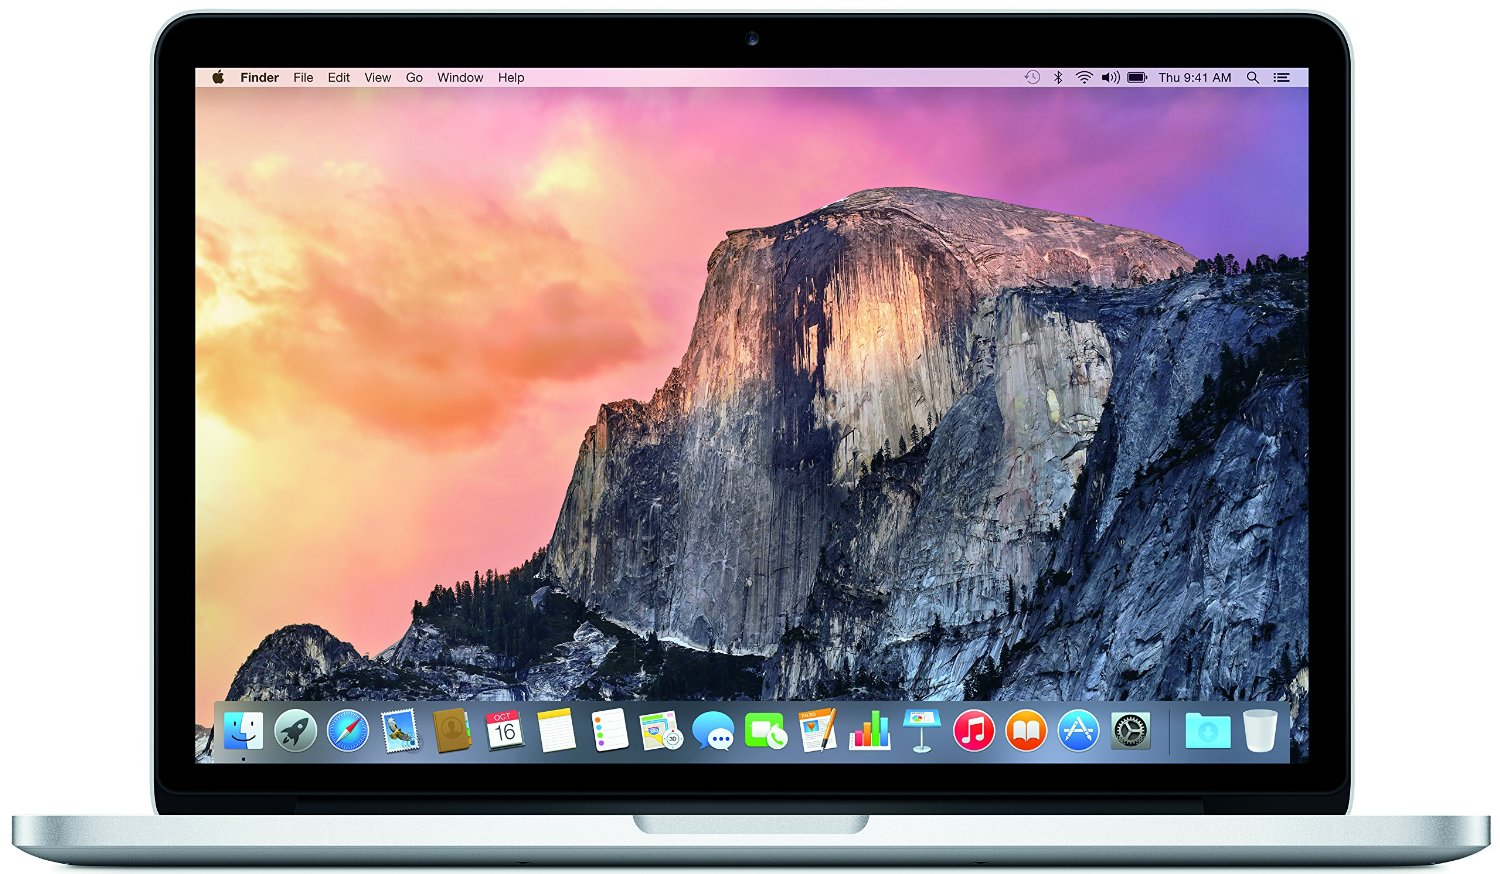 13 inch Macbook Pro 2015 Best Laptop for Graphic Design